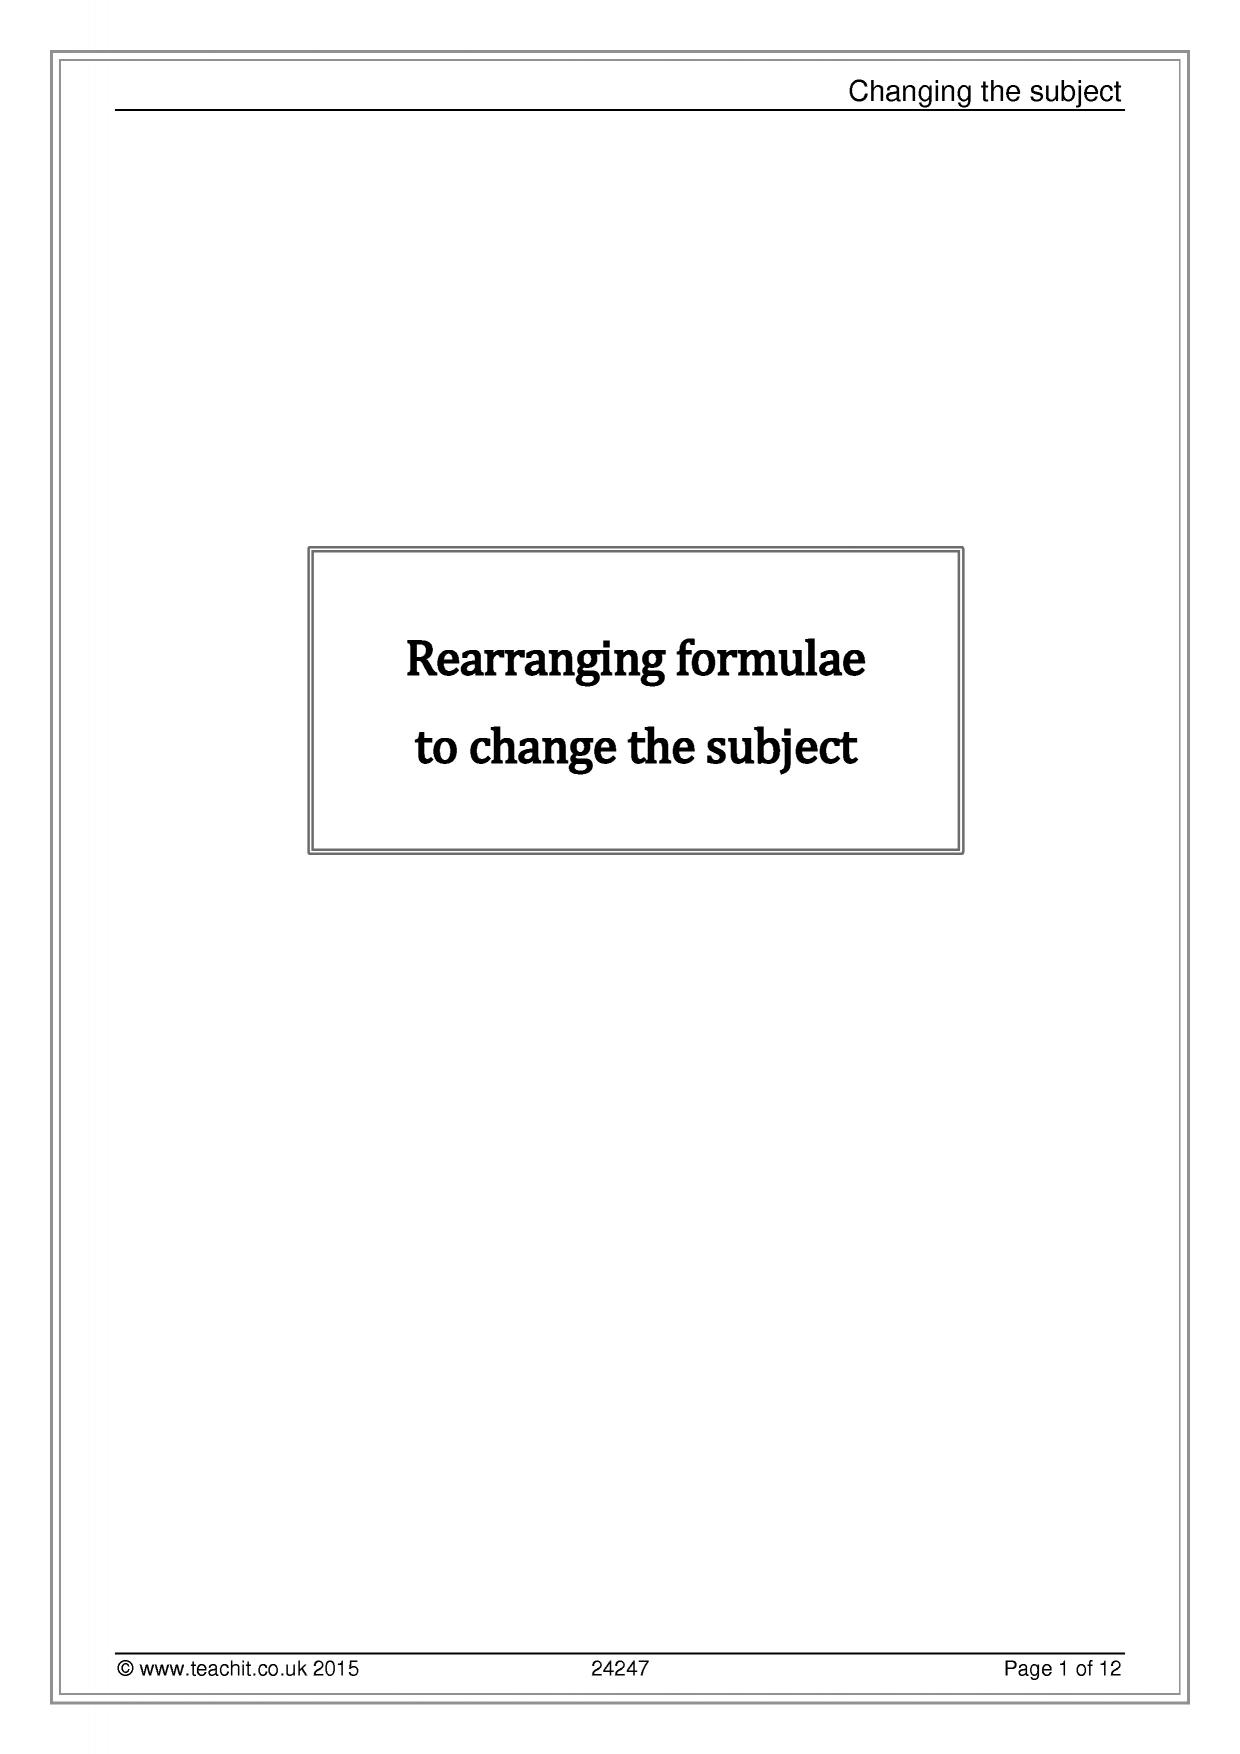 worksheet Changing Subject Of Formula Worksheet formulae and substitution teachit maths 0 preview